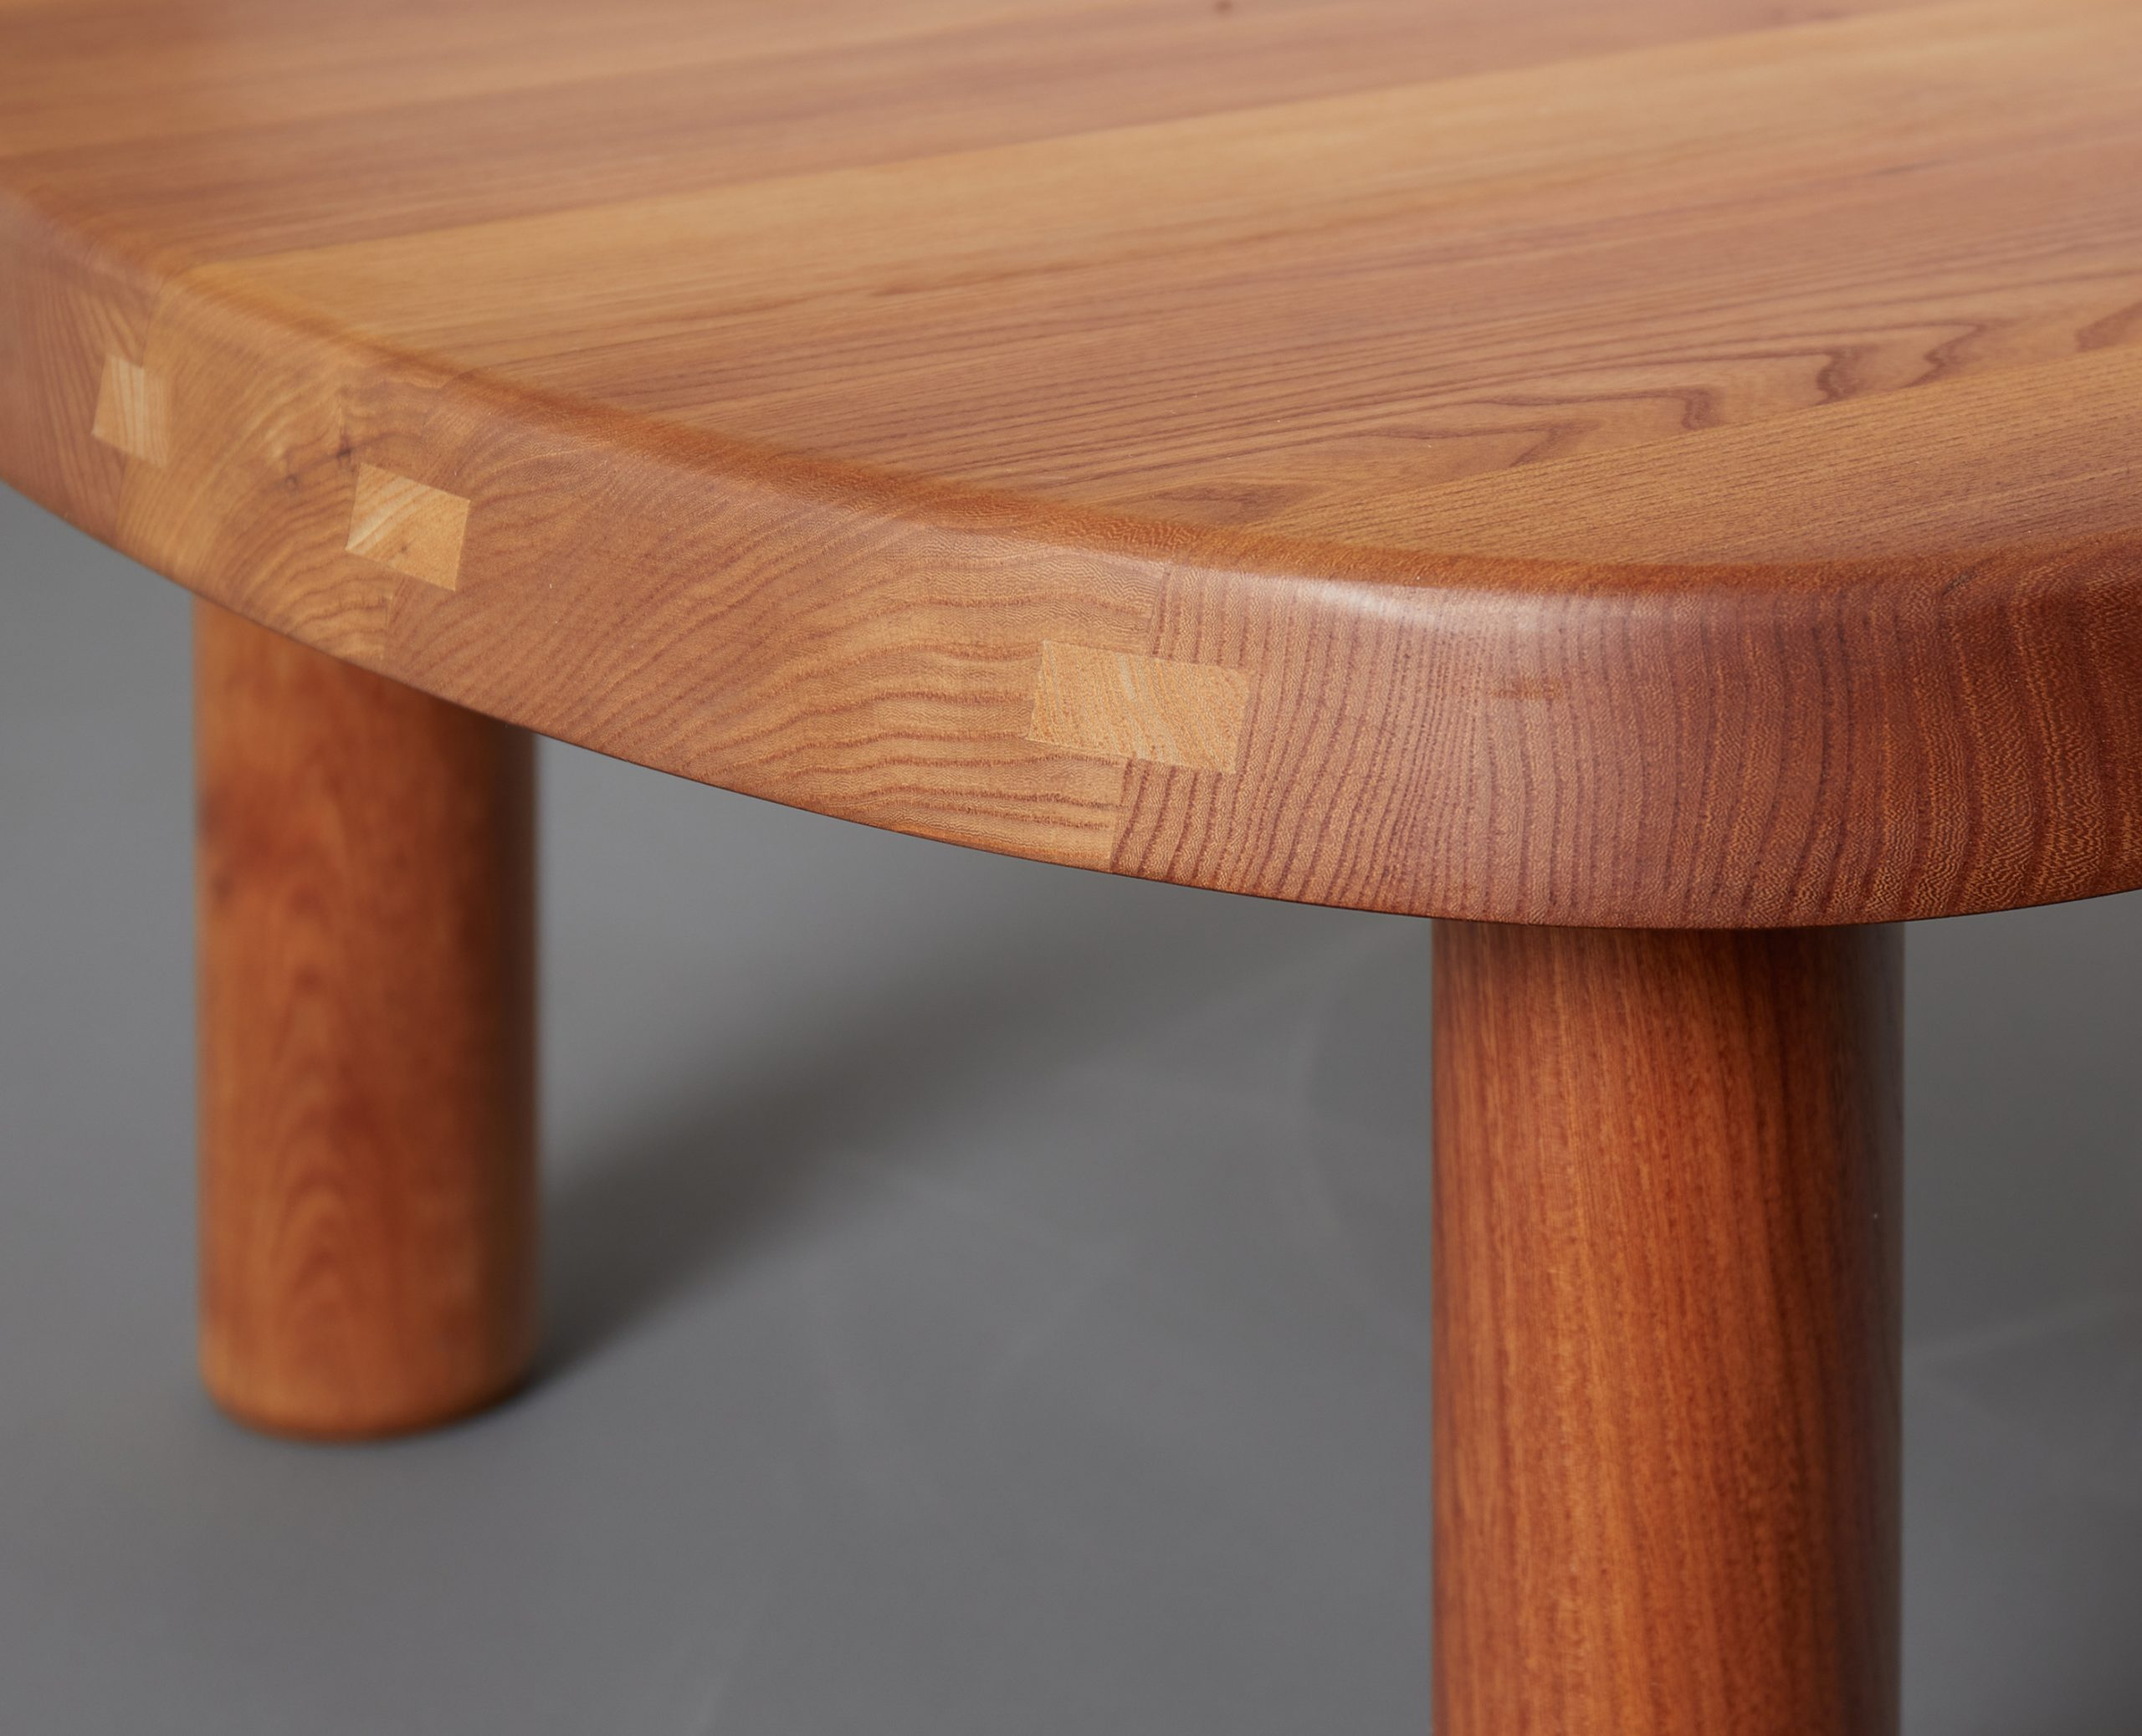 t23-table-by-pierre-chapo-image-06